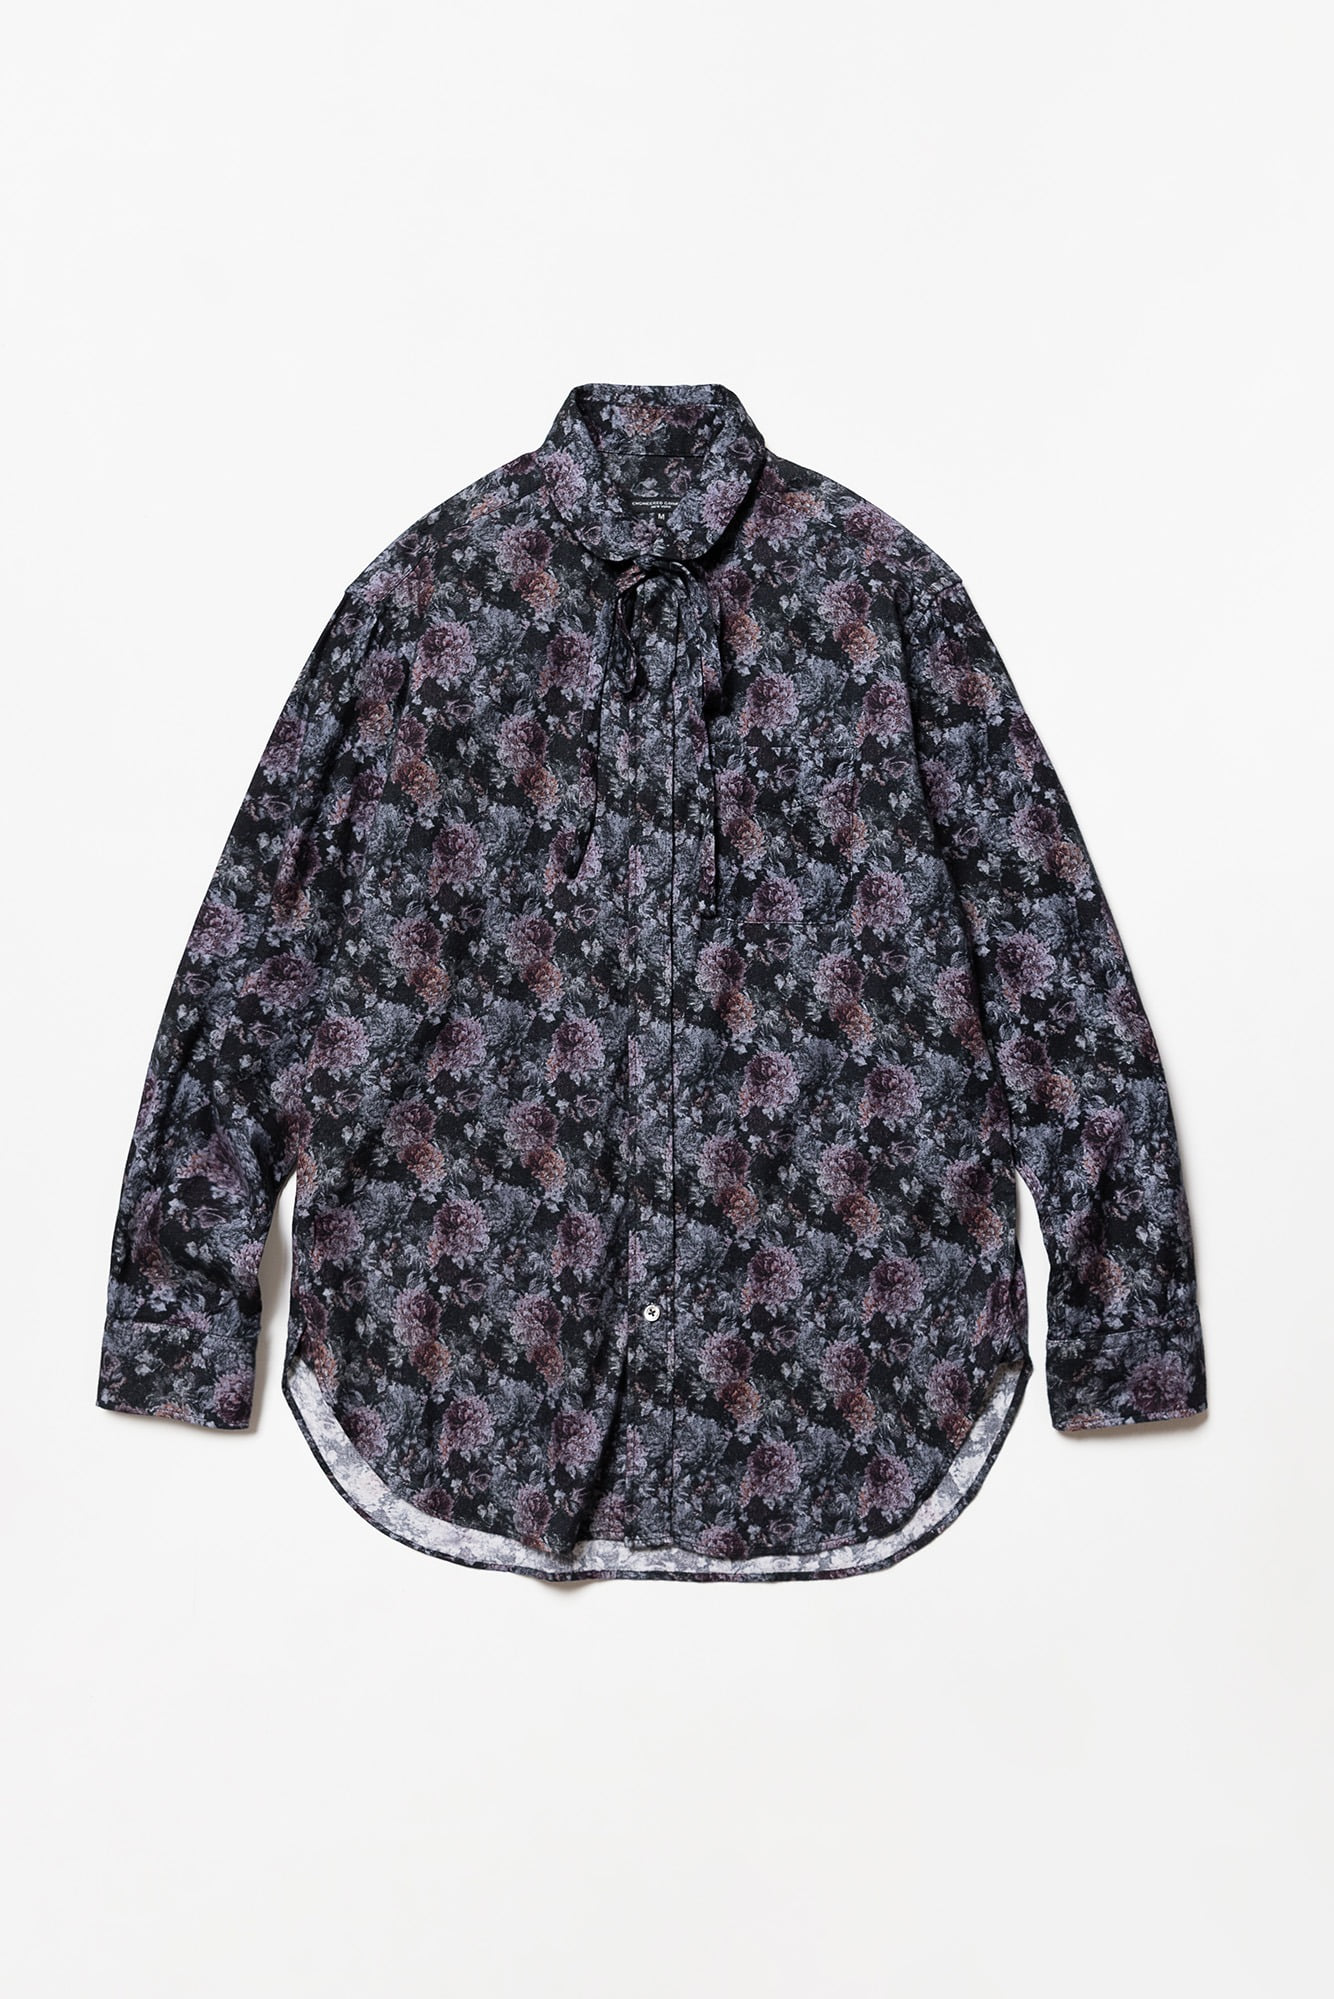 "ENGINEERED GARMENTS Rounded Collar Shirt ""Purple Cotton Flannel Floral Print"""